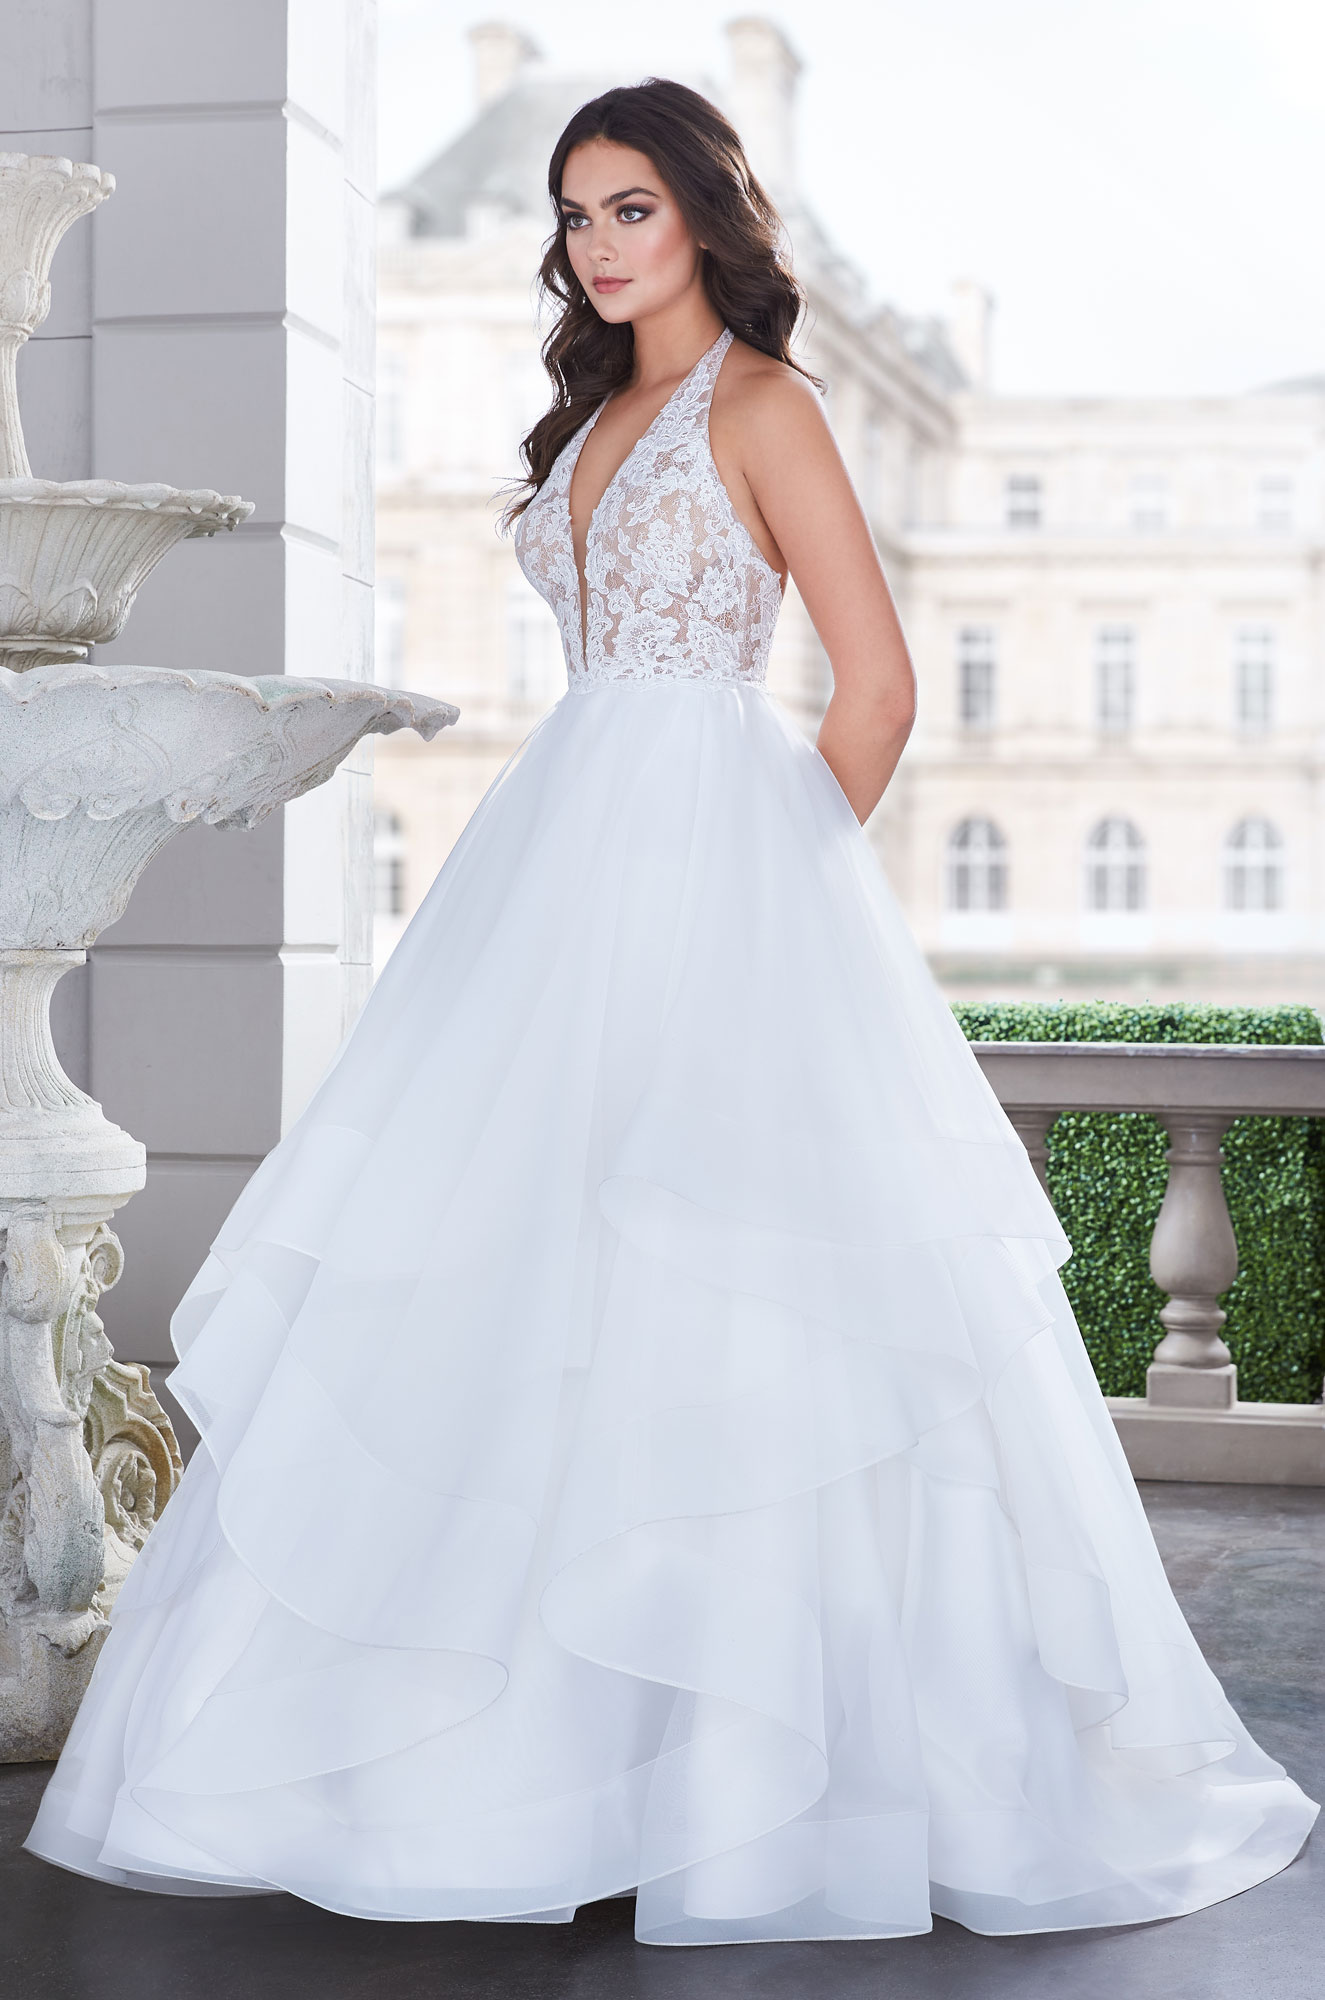 Lavish Ball Gown Wedding Dress - Style #4855 | Paloma Blanca